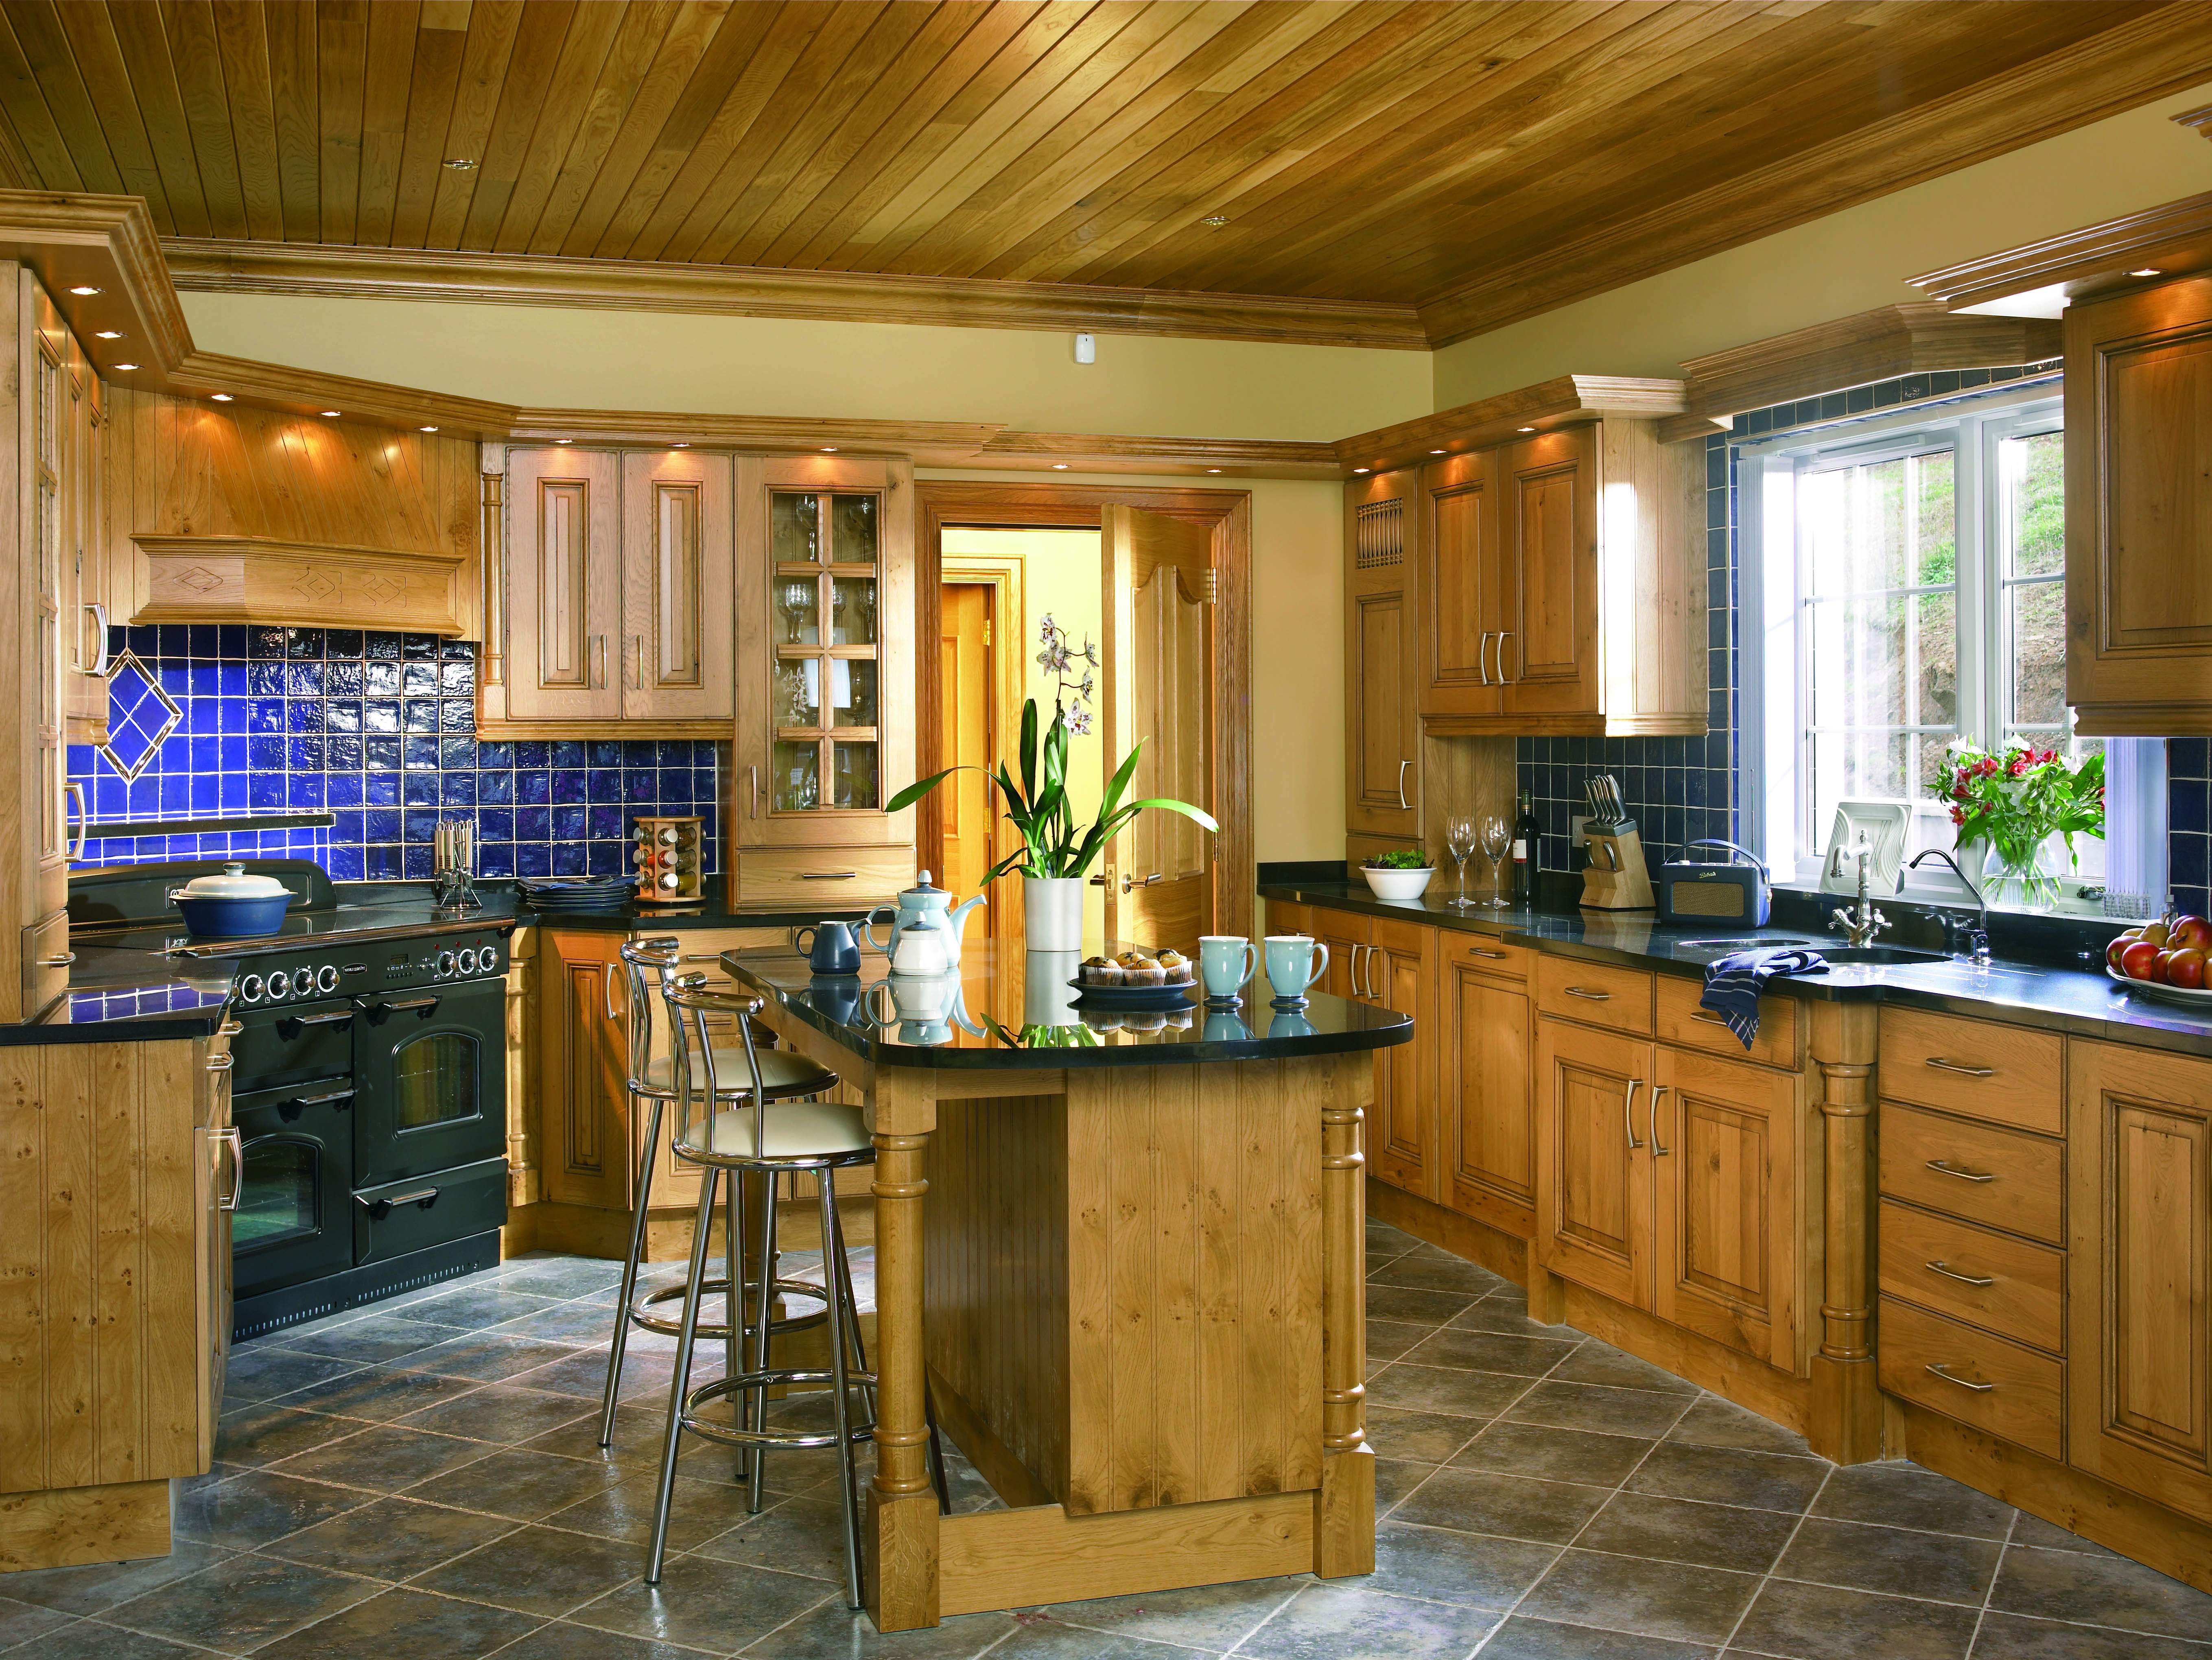 Home is where the heart is. Kitchens Kitchen design